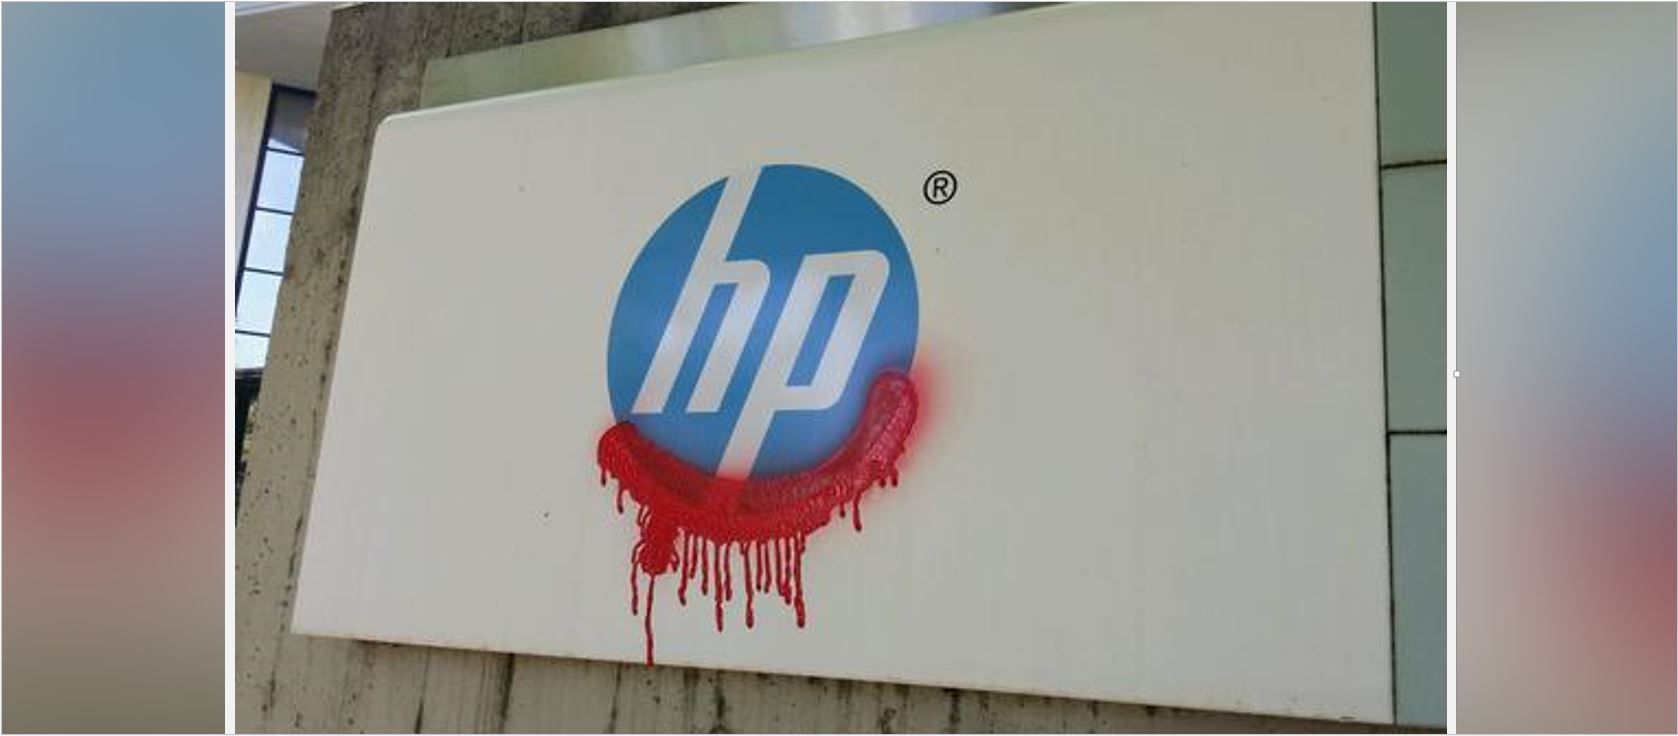 Anti-Israel activists planning week long boycott and protest of HP – Israel responds